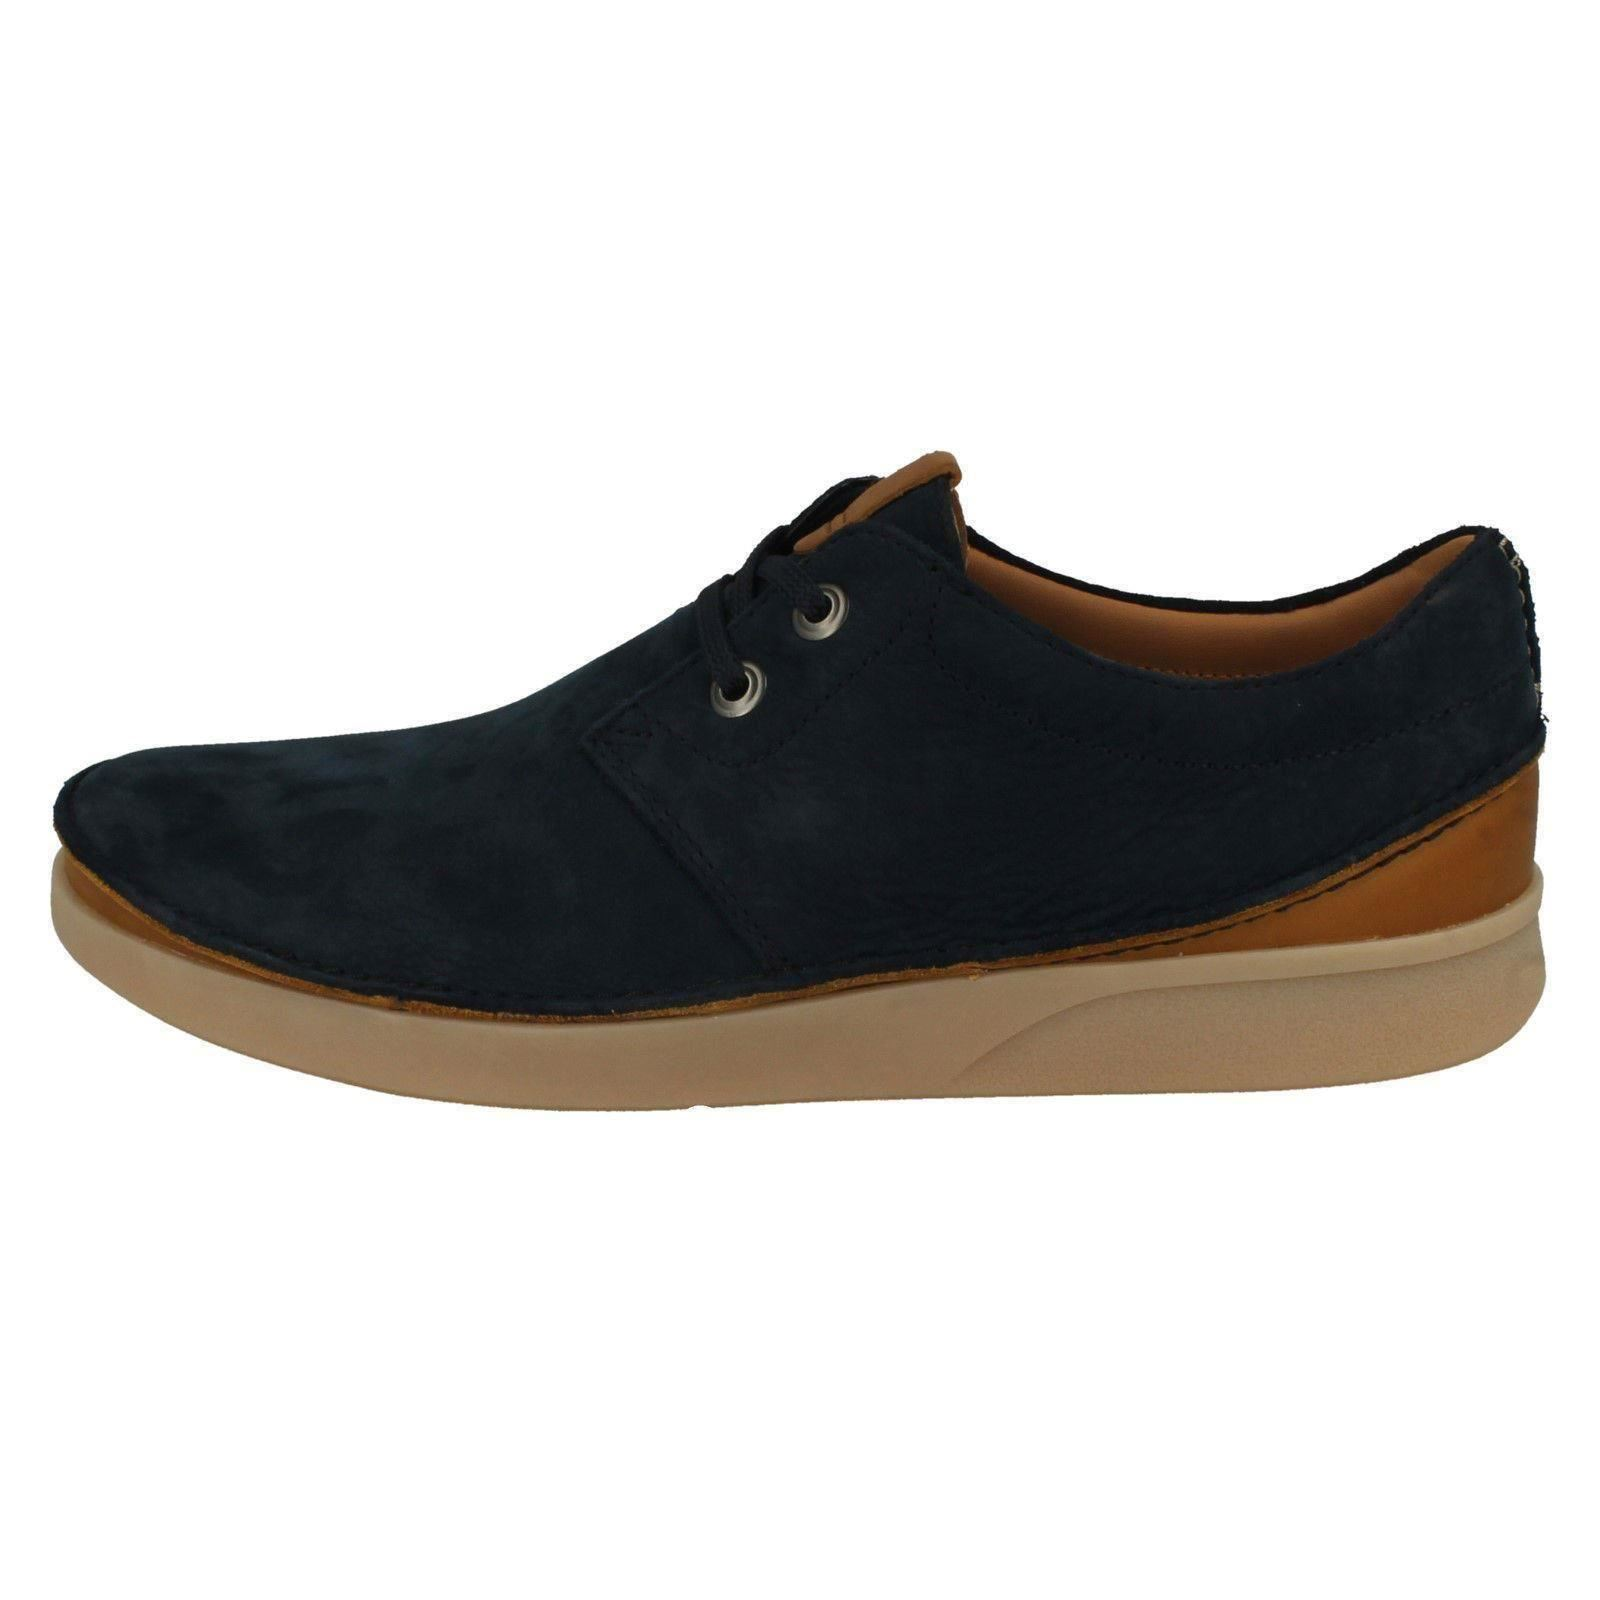 Mens Clarks Casual Lace Up Shoes Oakland Lace